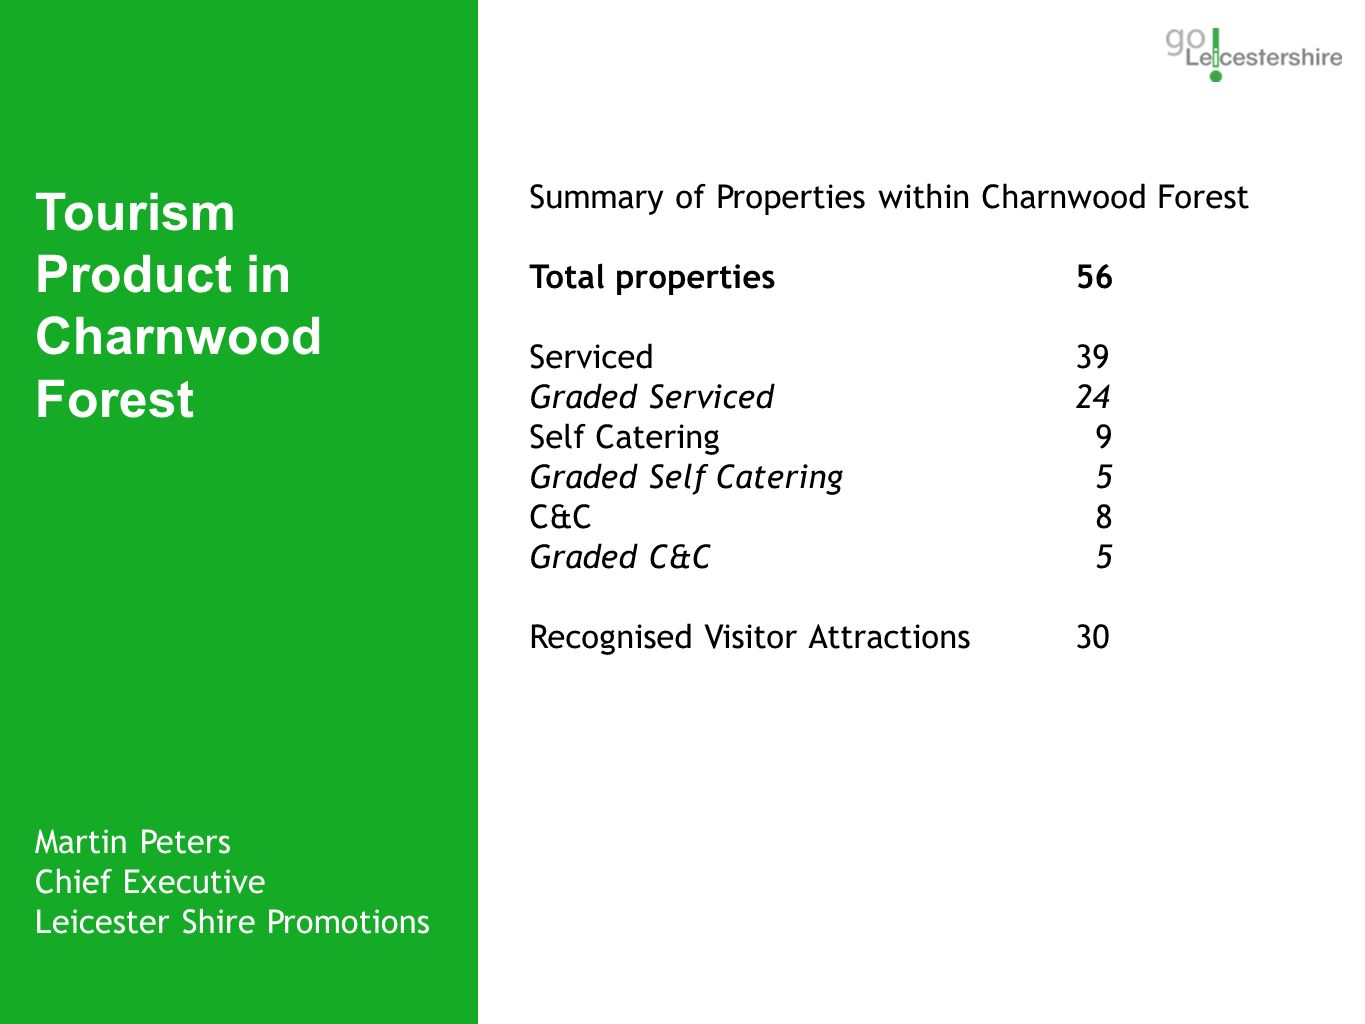 Martin Peters Chief Executive Leicester Shire Promotions Tourism Product in Charnwood Forest Bradgate Park Summary of Properties within Charnwood Forest Total properties56 Serviced 39 Graded Serviced24 Self Catering 9 Graded Self Catering 5 C&C 8 Graded C&C 5 Recognised Visitor Attractions 30